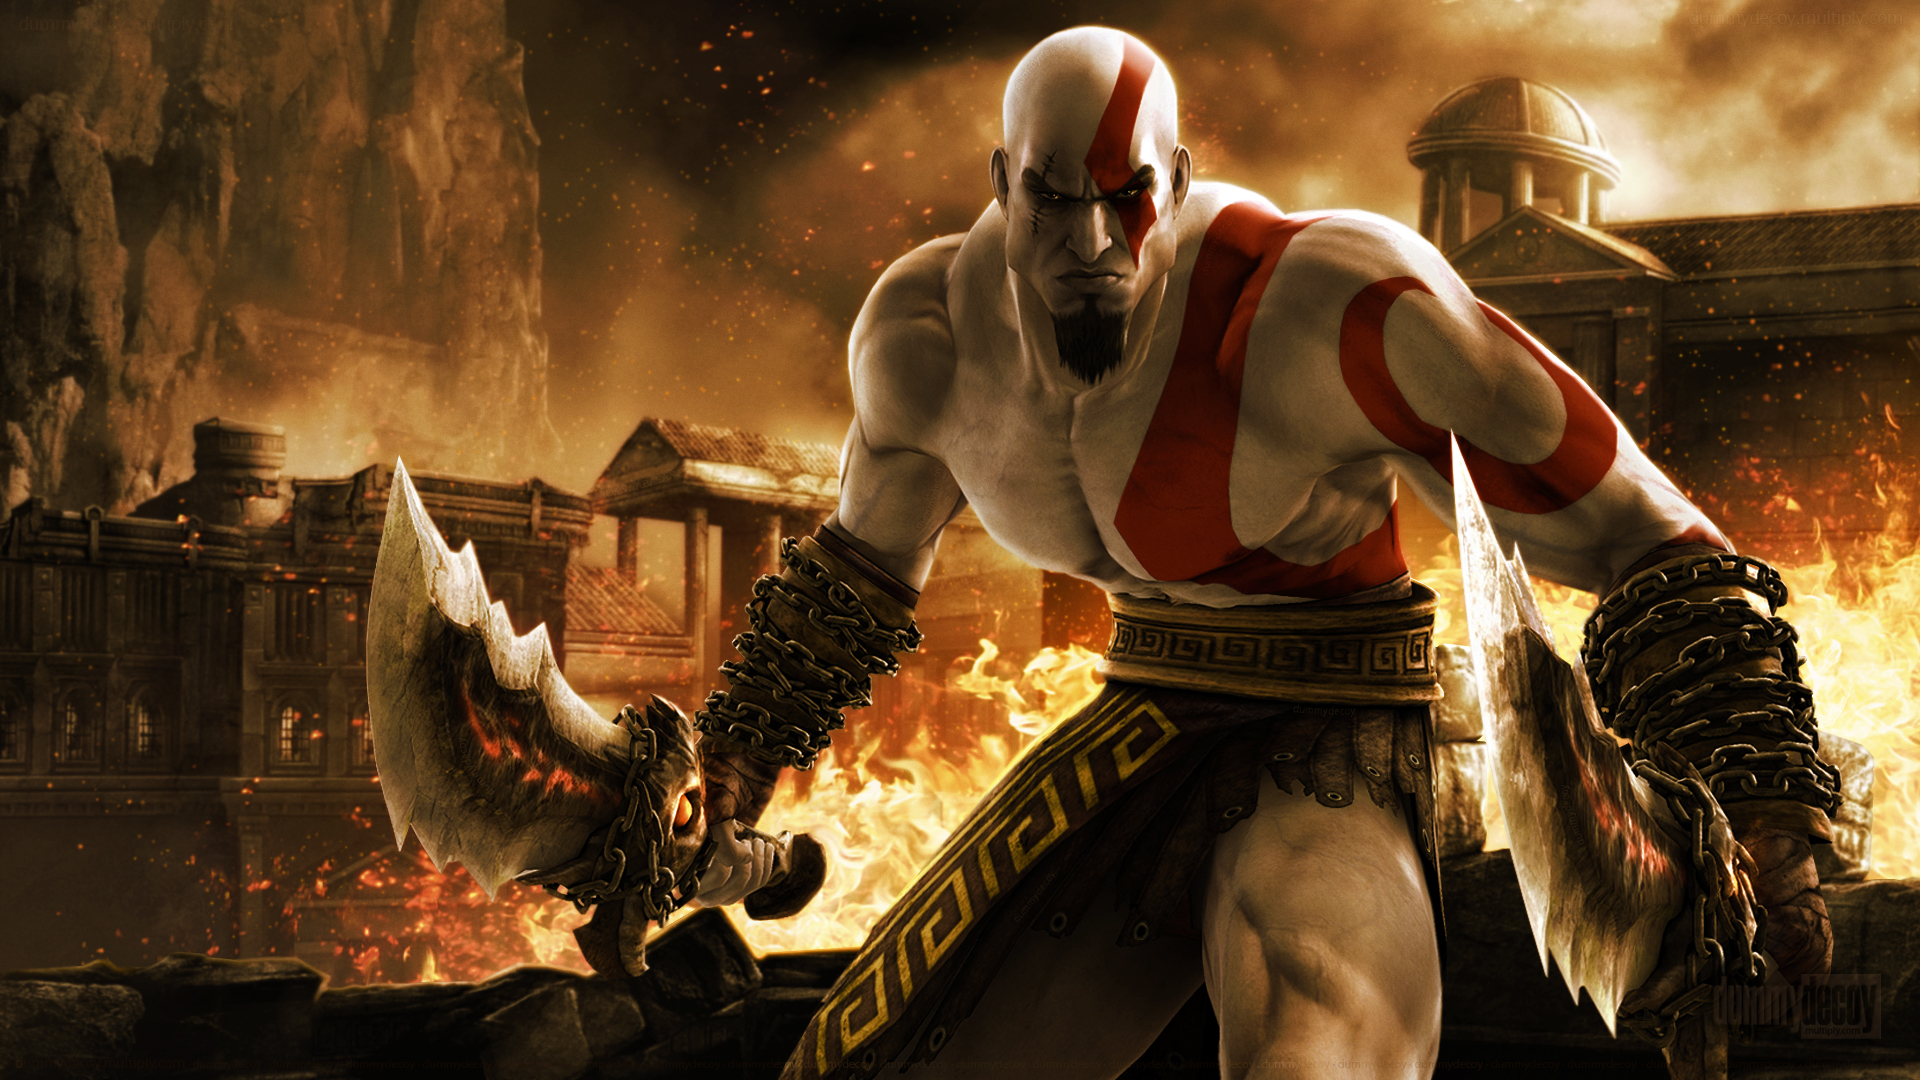 Free Download Kratos In God Of War Wallpaper 1920x1080 For